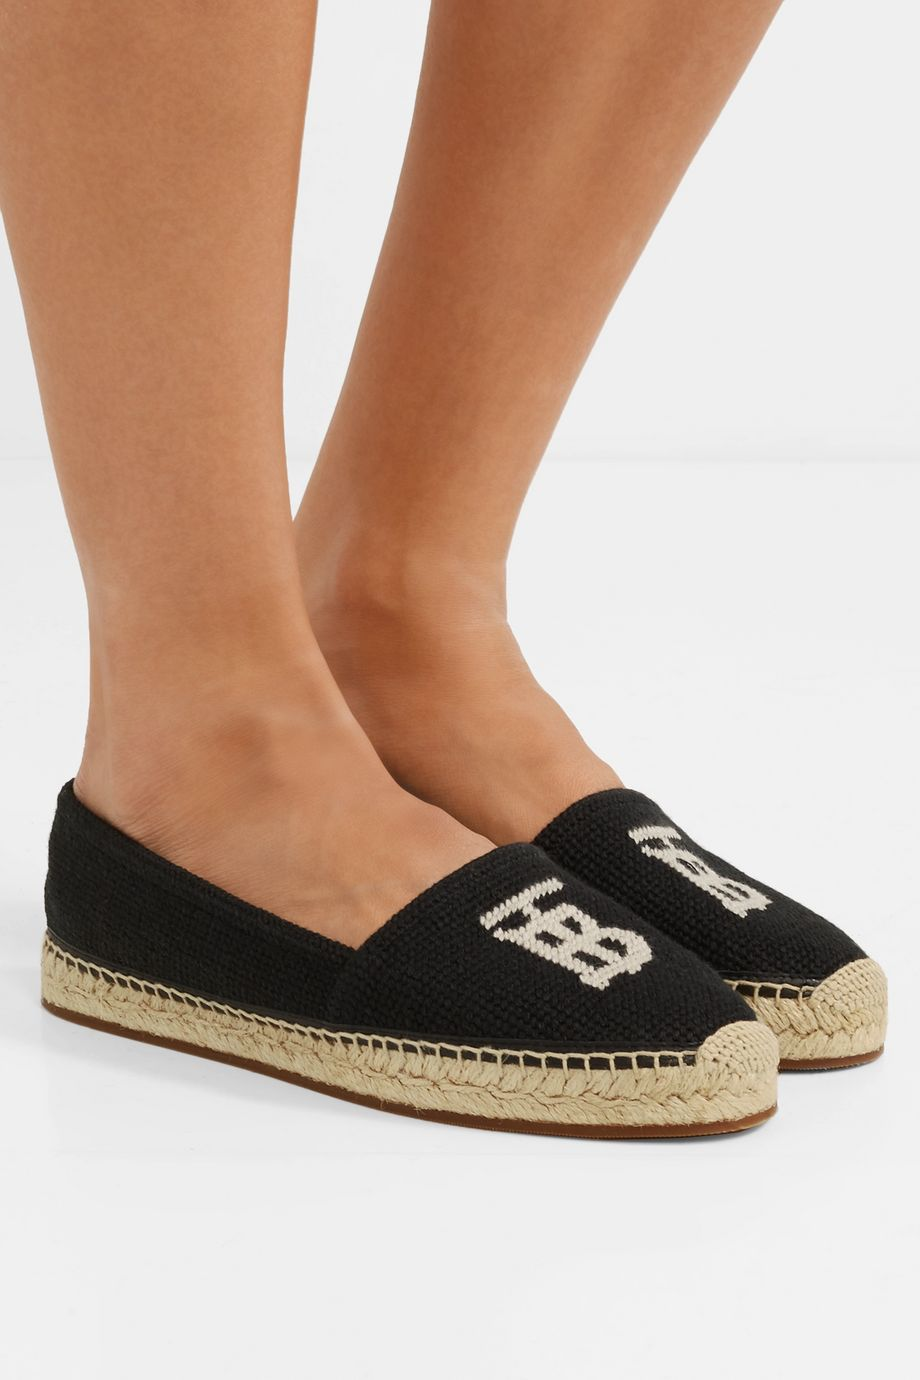 Burberry Tabitha leather-trimmed logo-detailed canvas espadrilles